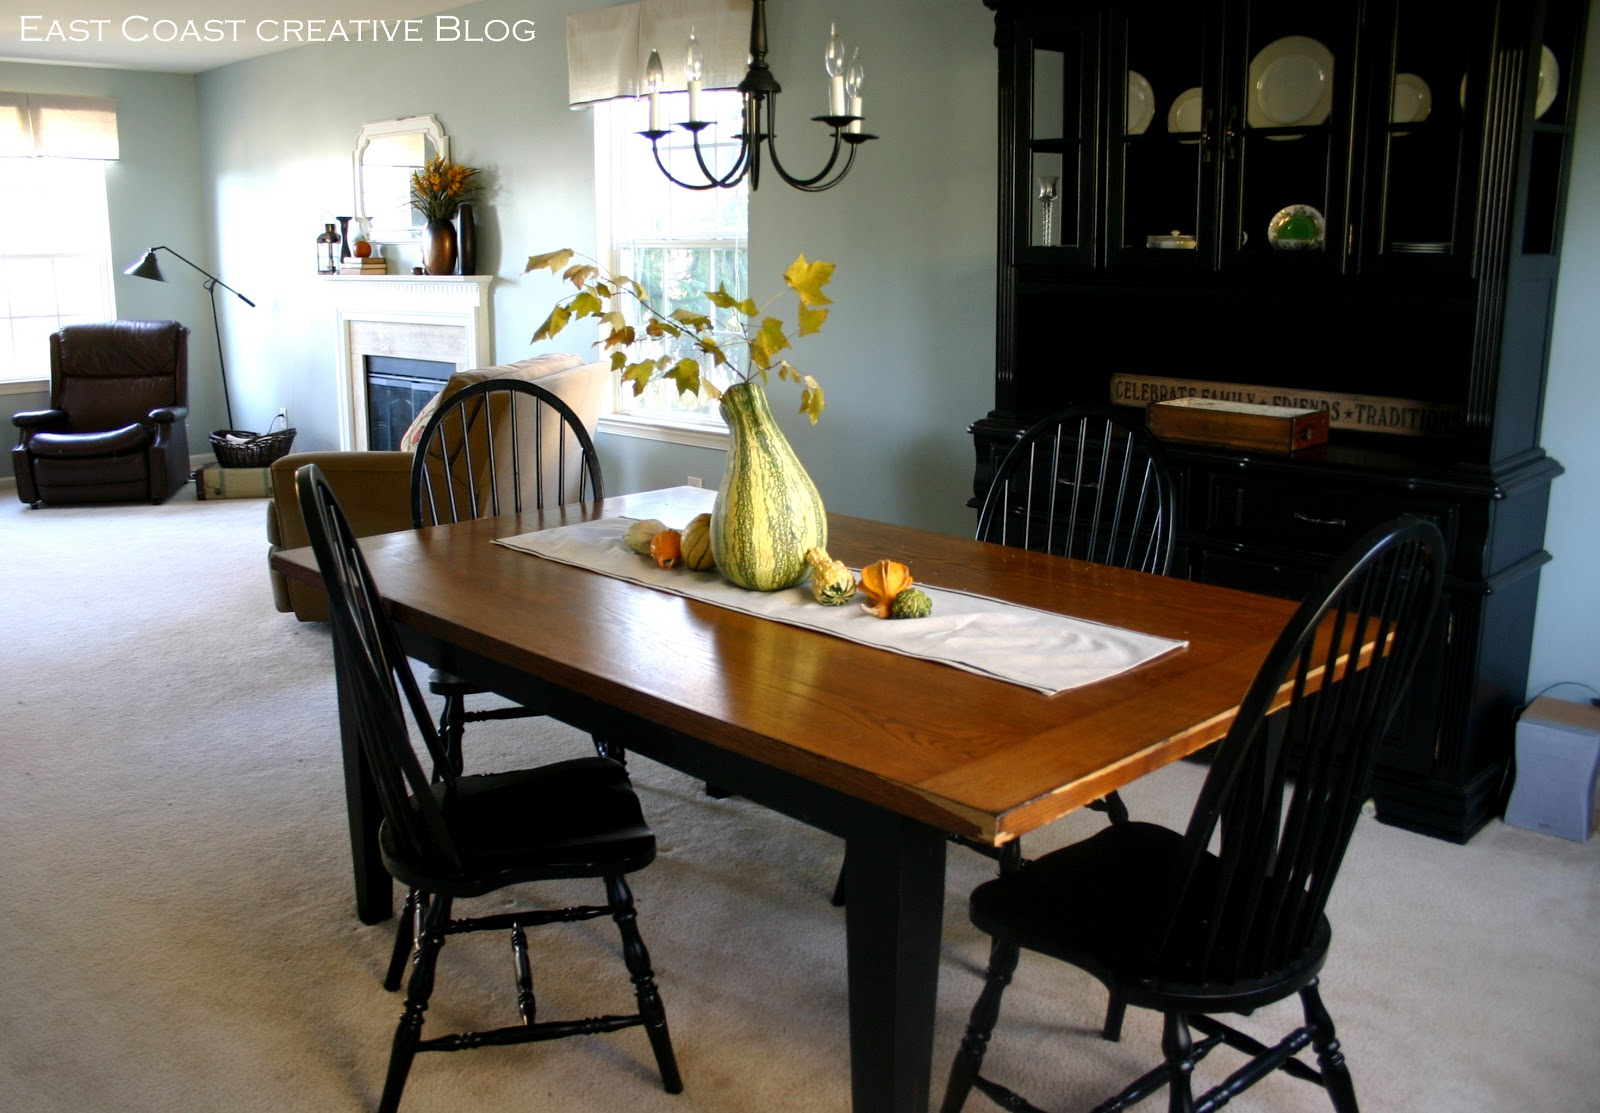 Refinished Dining Room Table Furniture Makeover East Coast